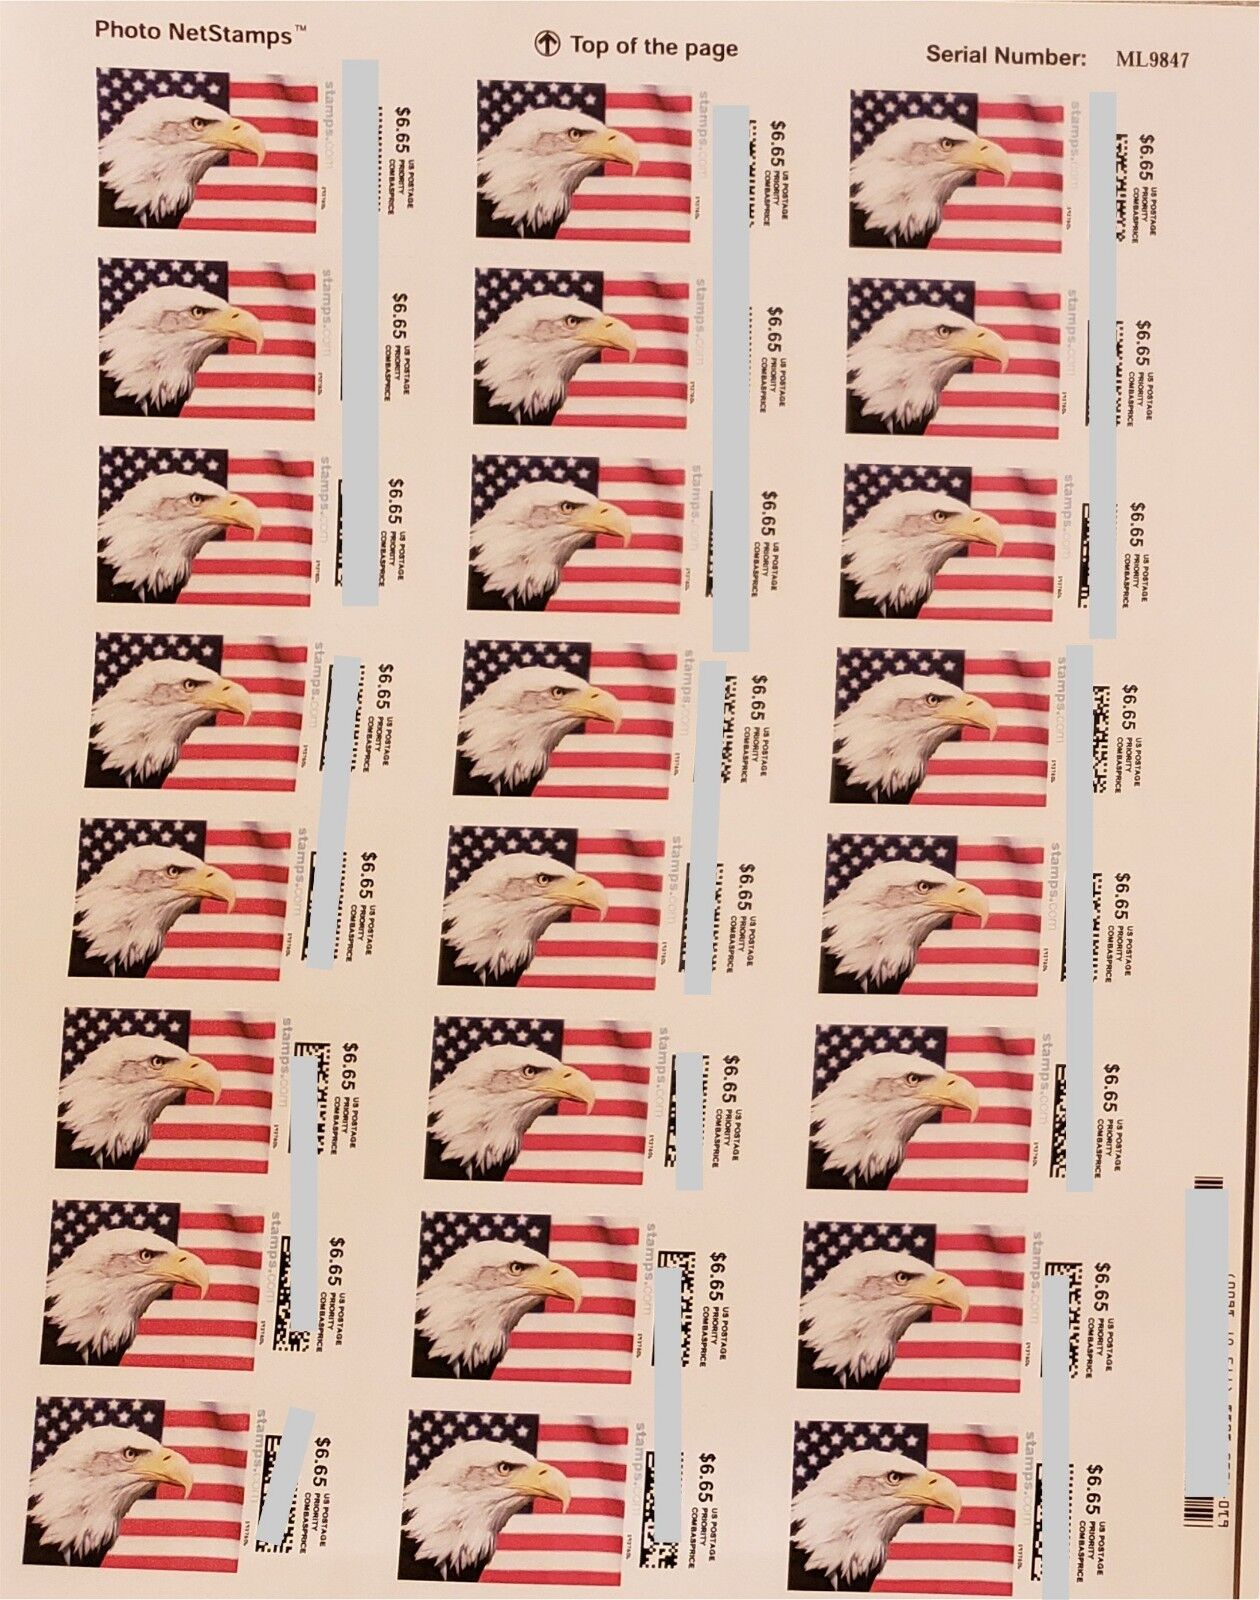 USPS Postage $6.65 Stamps, face value $159.60, 24 pieces